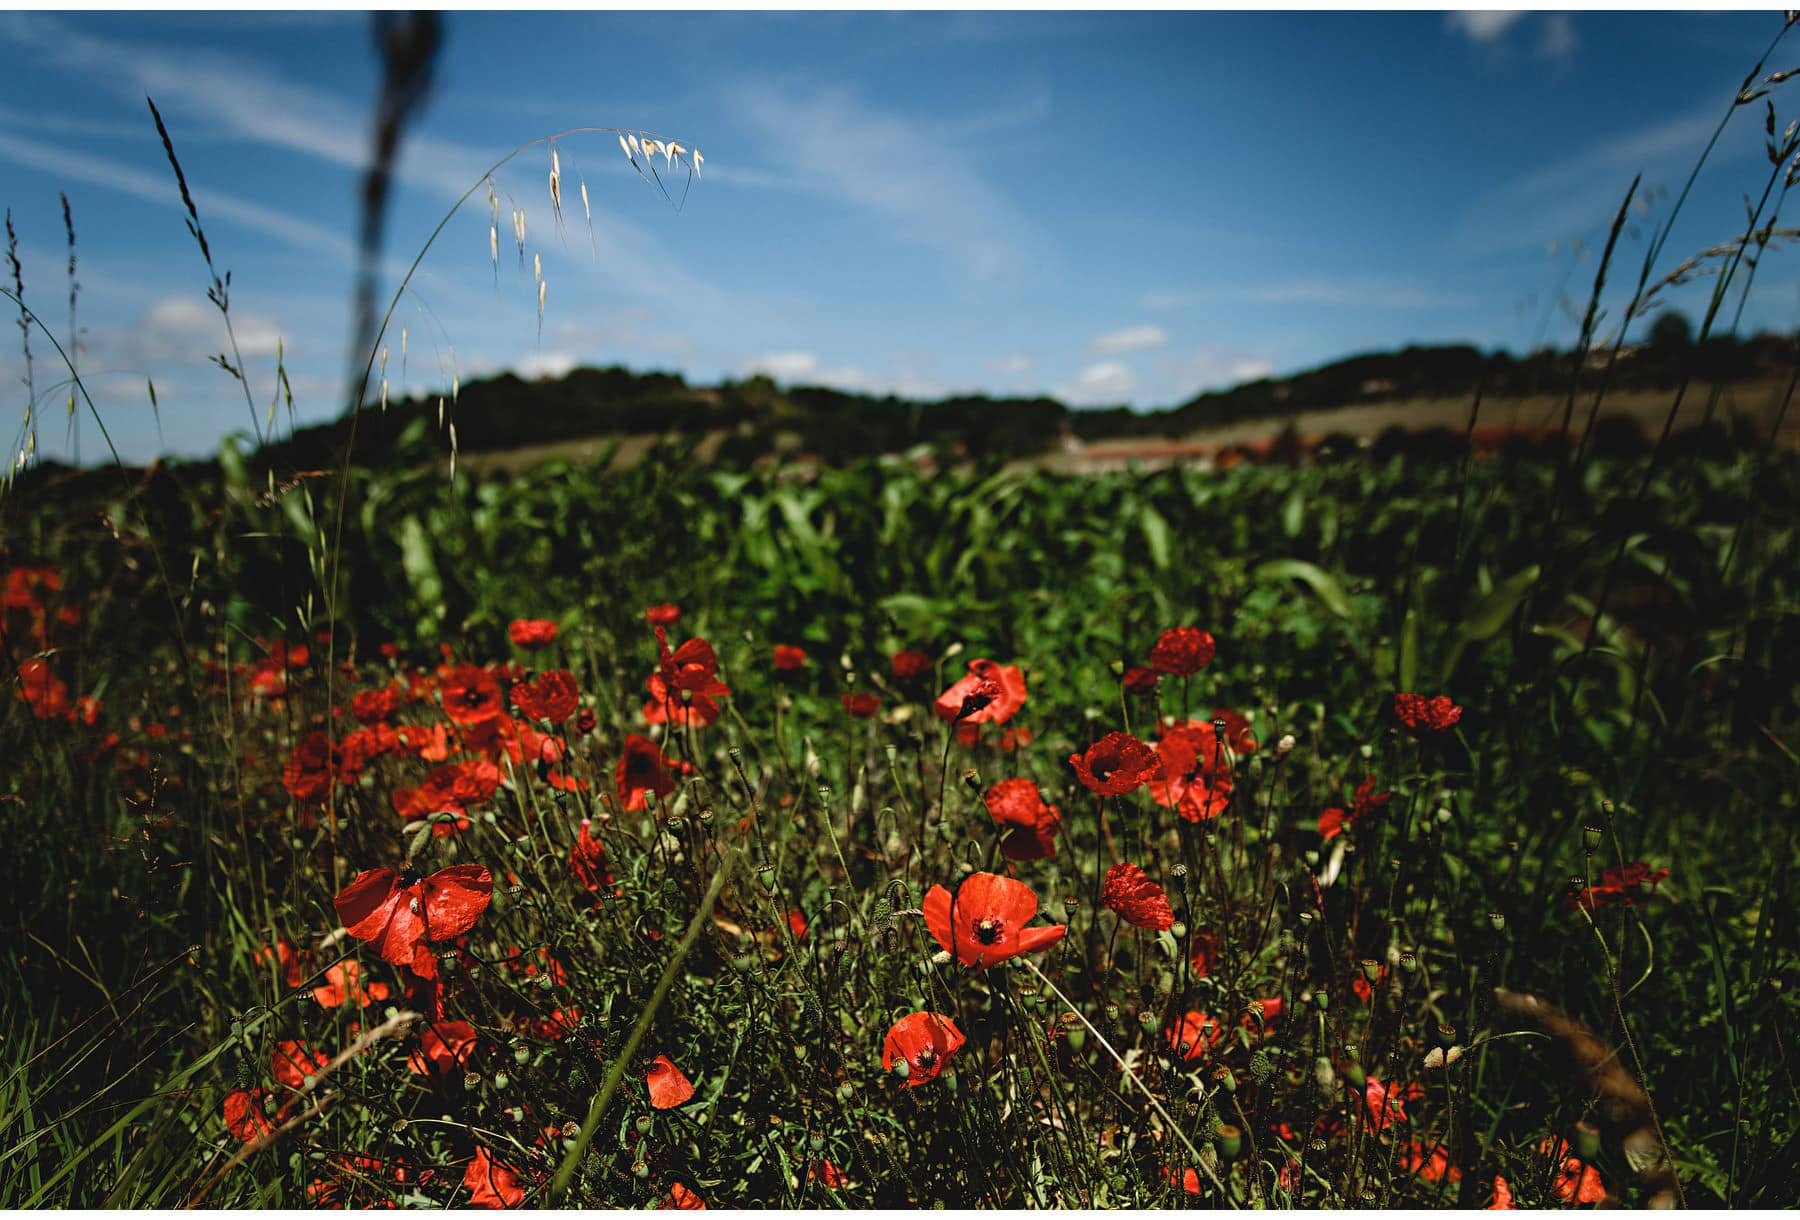 Wild poppies in the Dordogne, South of France